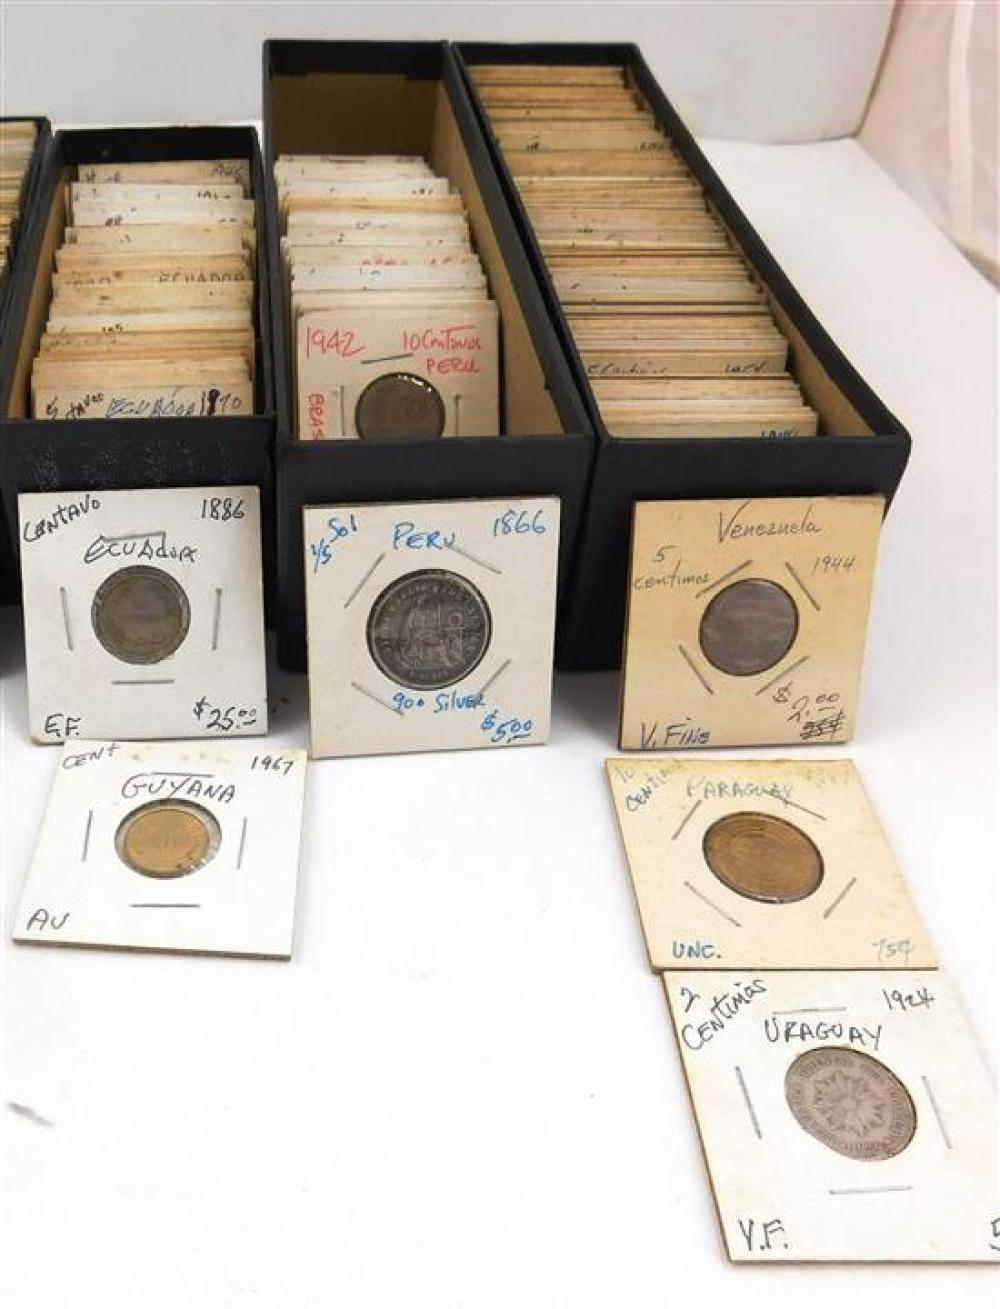 COINS: Approximately 400 to 550 South and Central American coins, including: Panama, Argentina, Peru, Brazil, etc., early 1800s to 1...